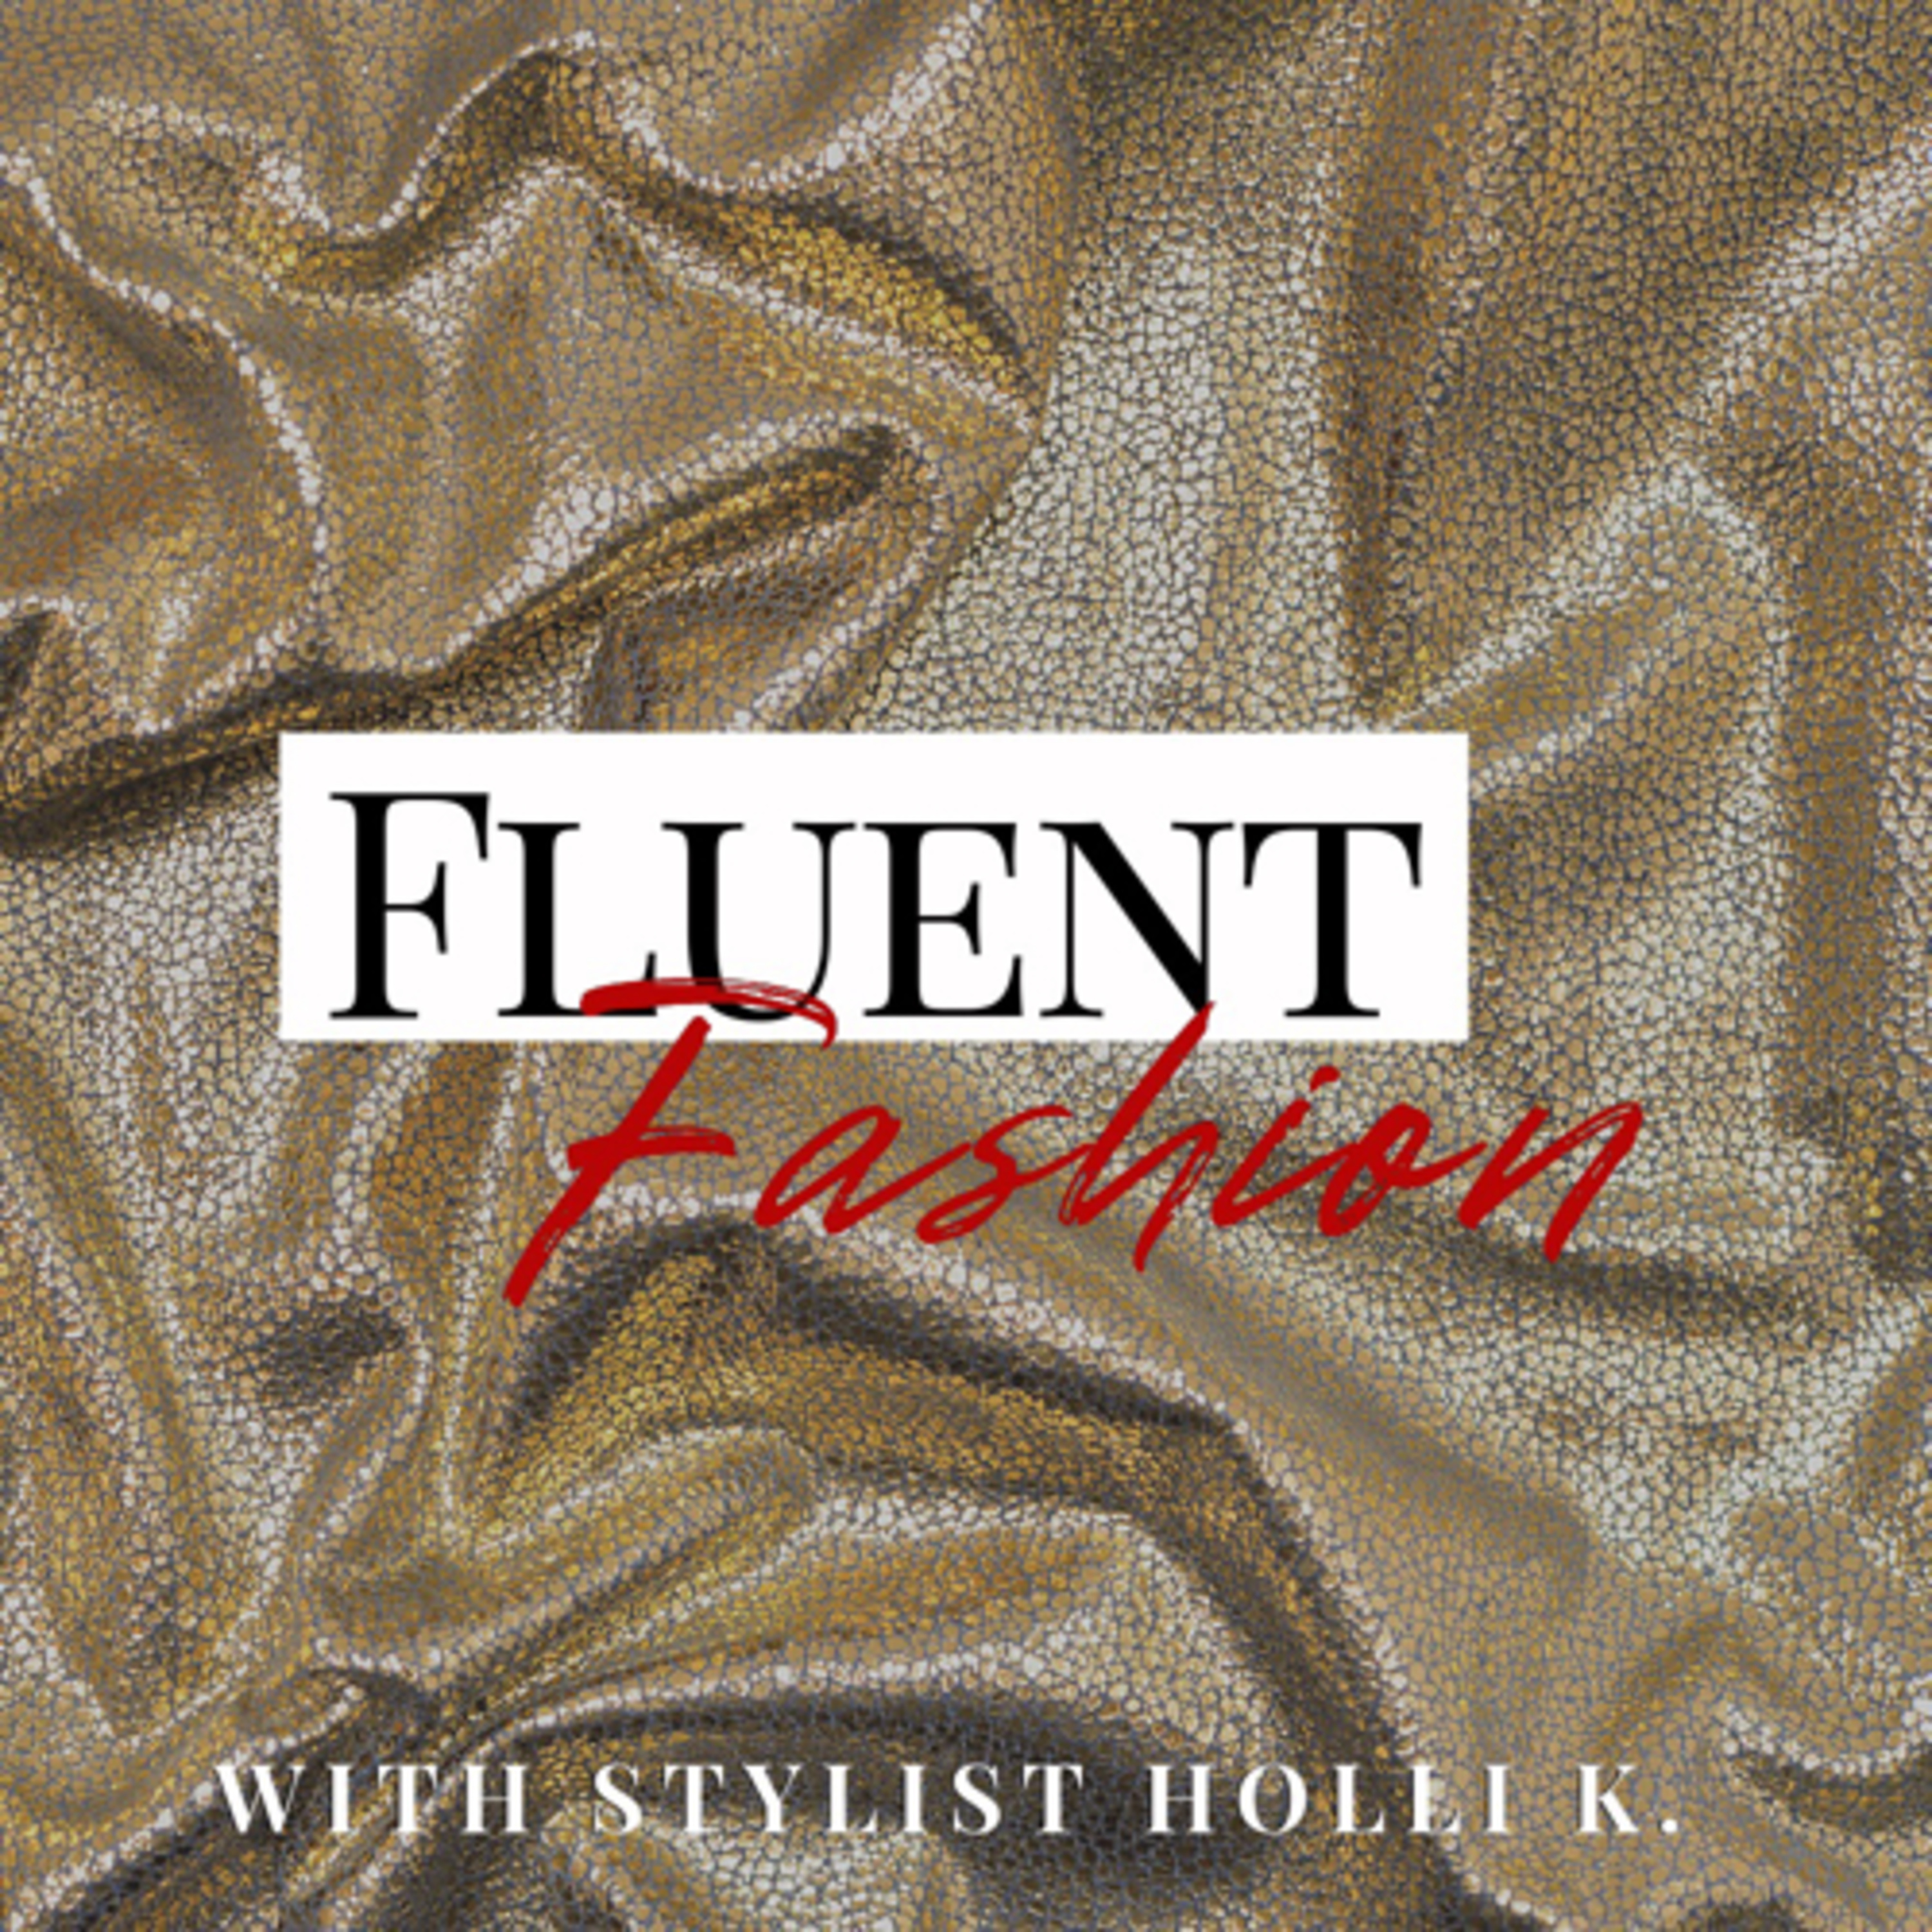 Ep. 03 Fluent- The Roaring 20's & More!